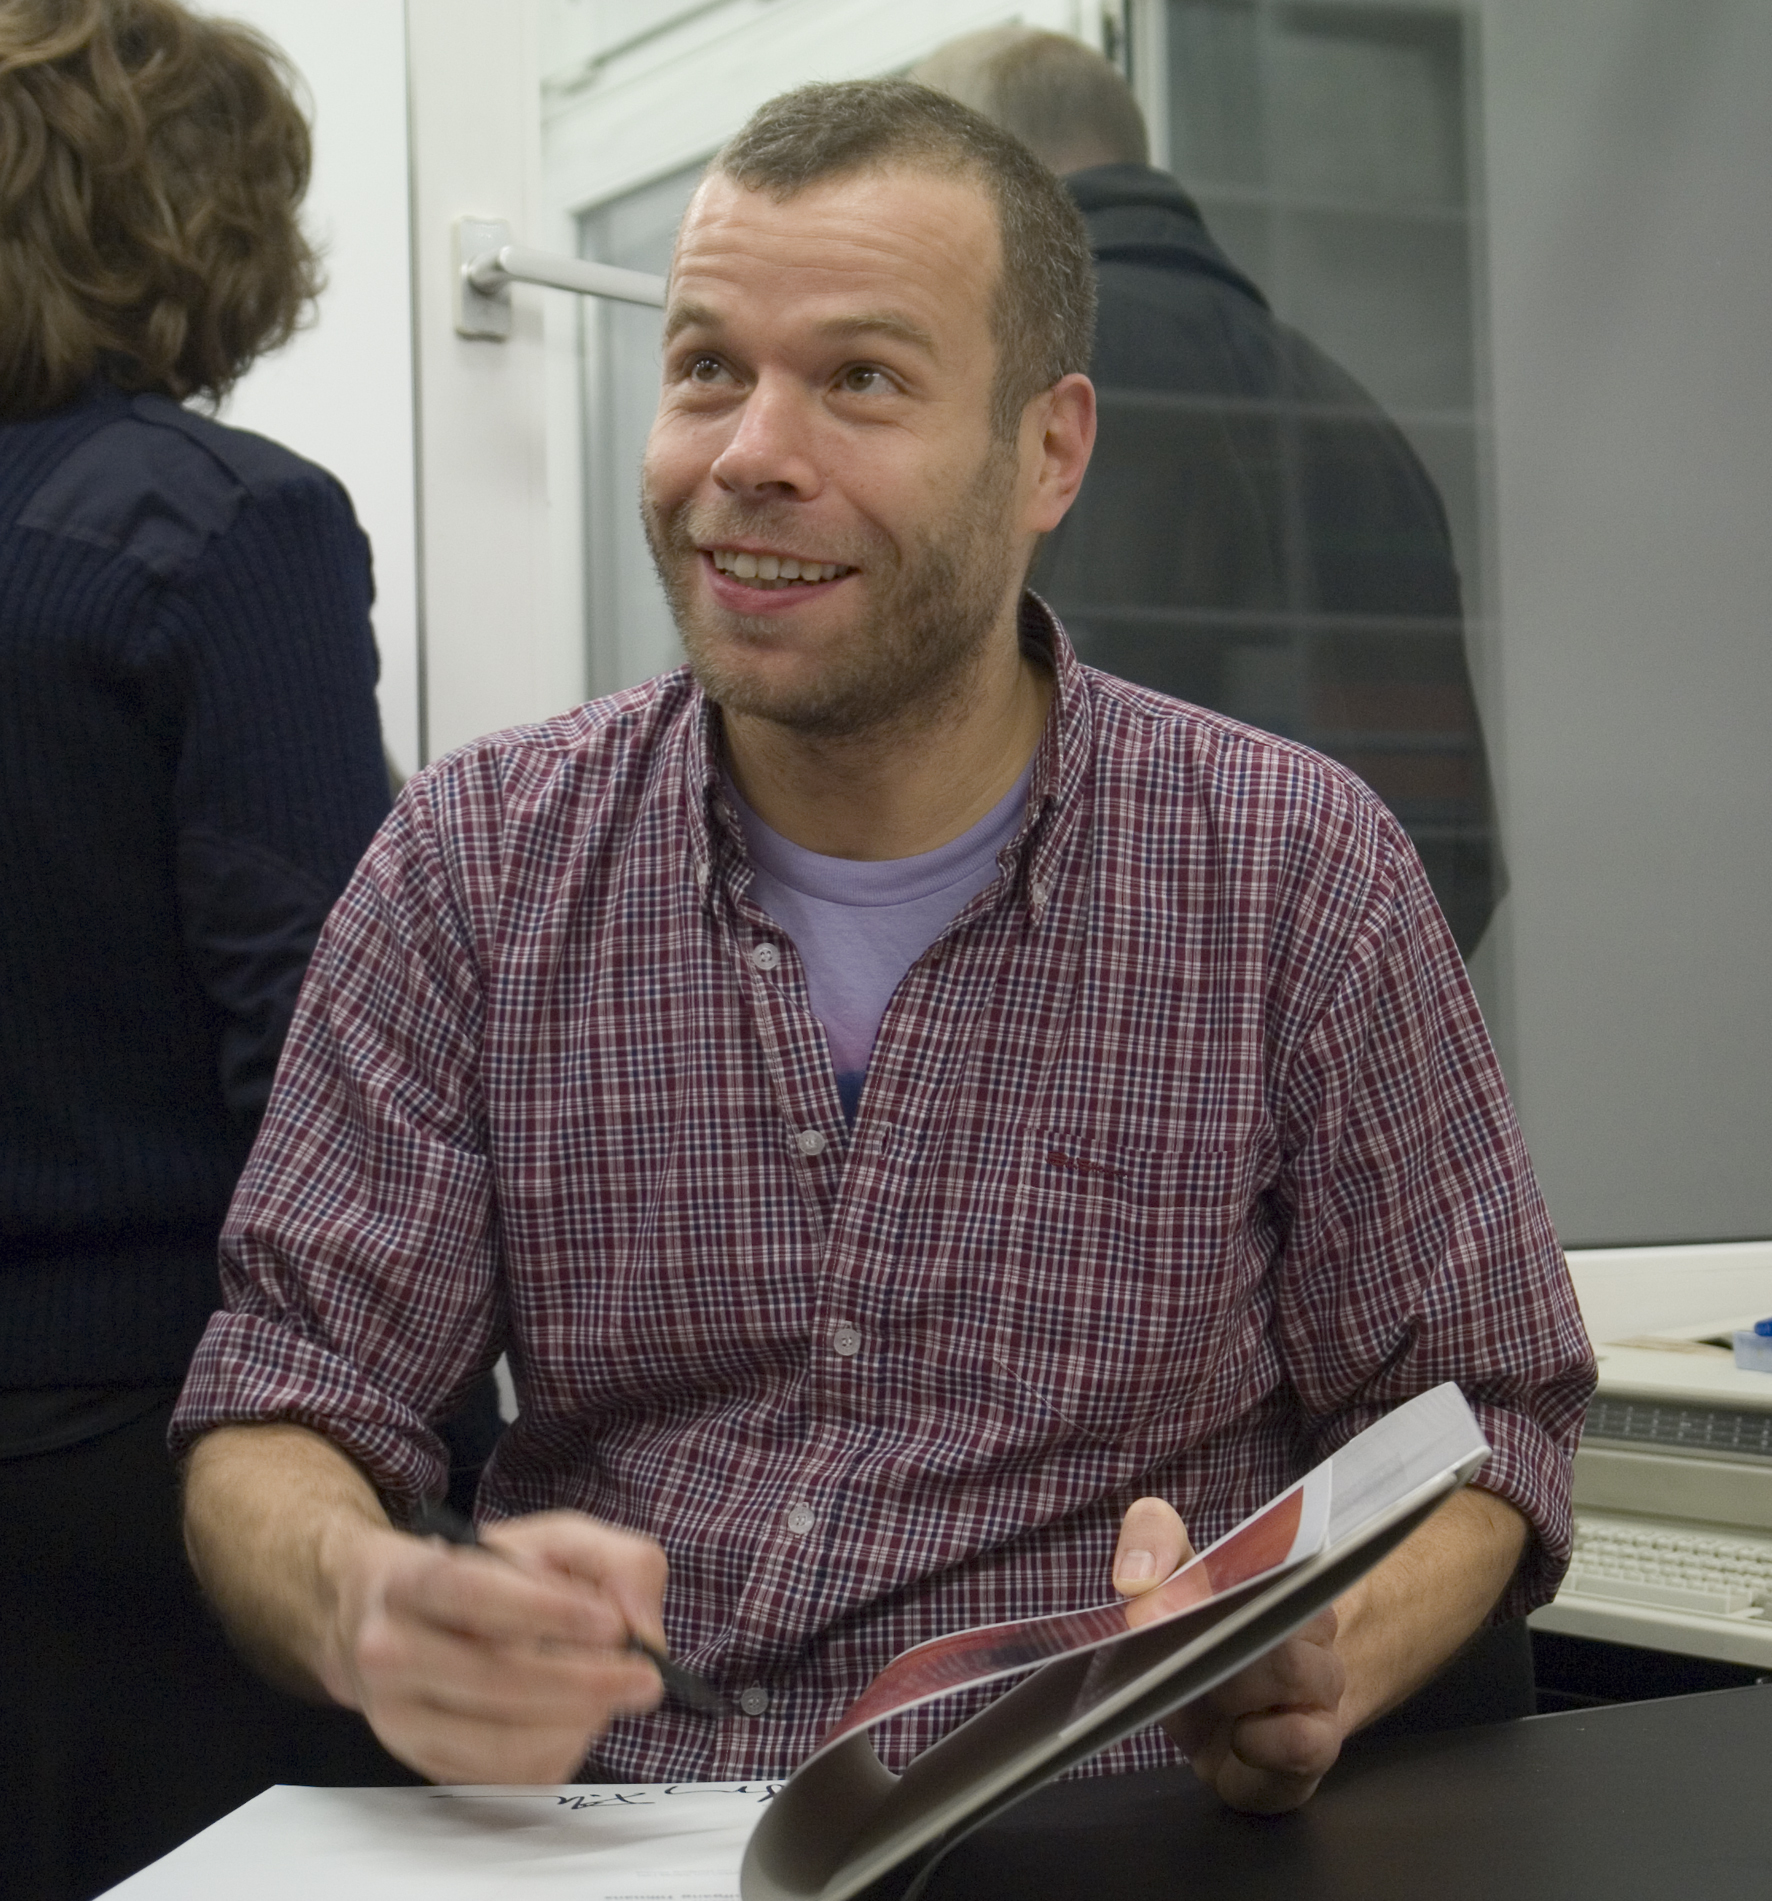 Image of Wolfgang Tillmans from Wikidata